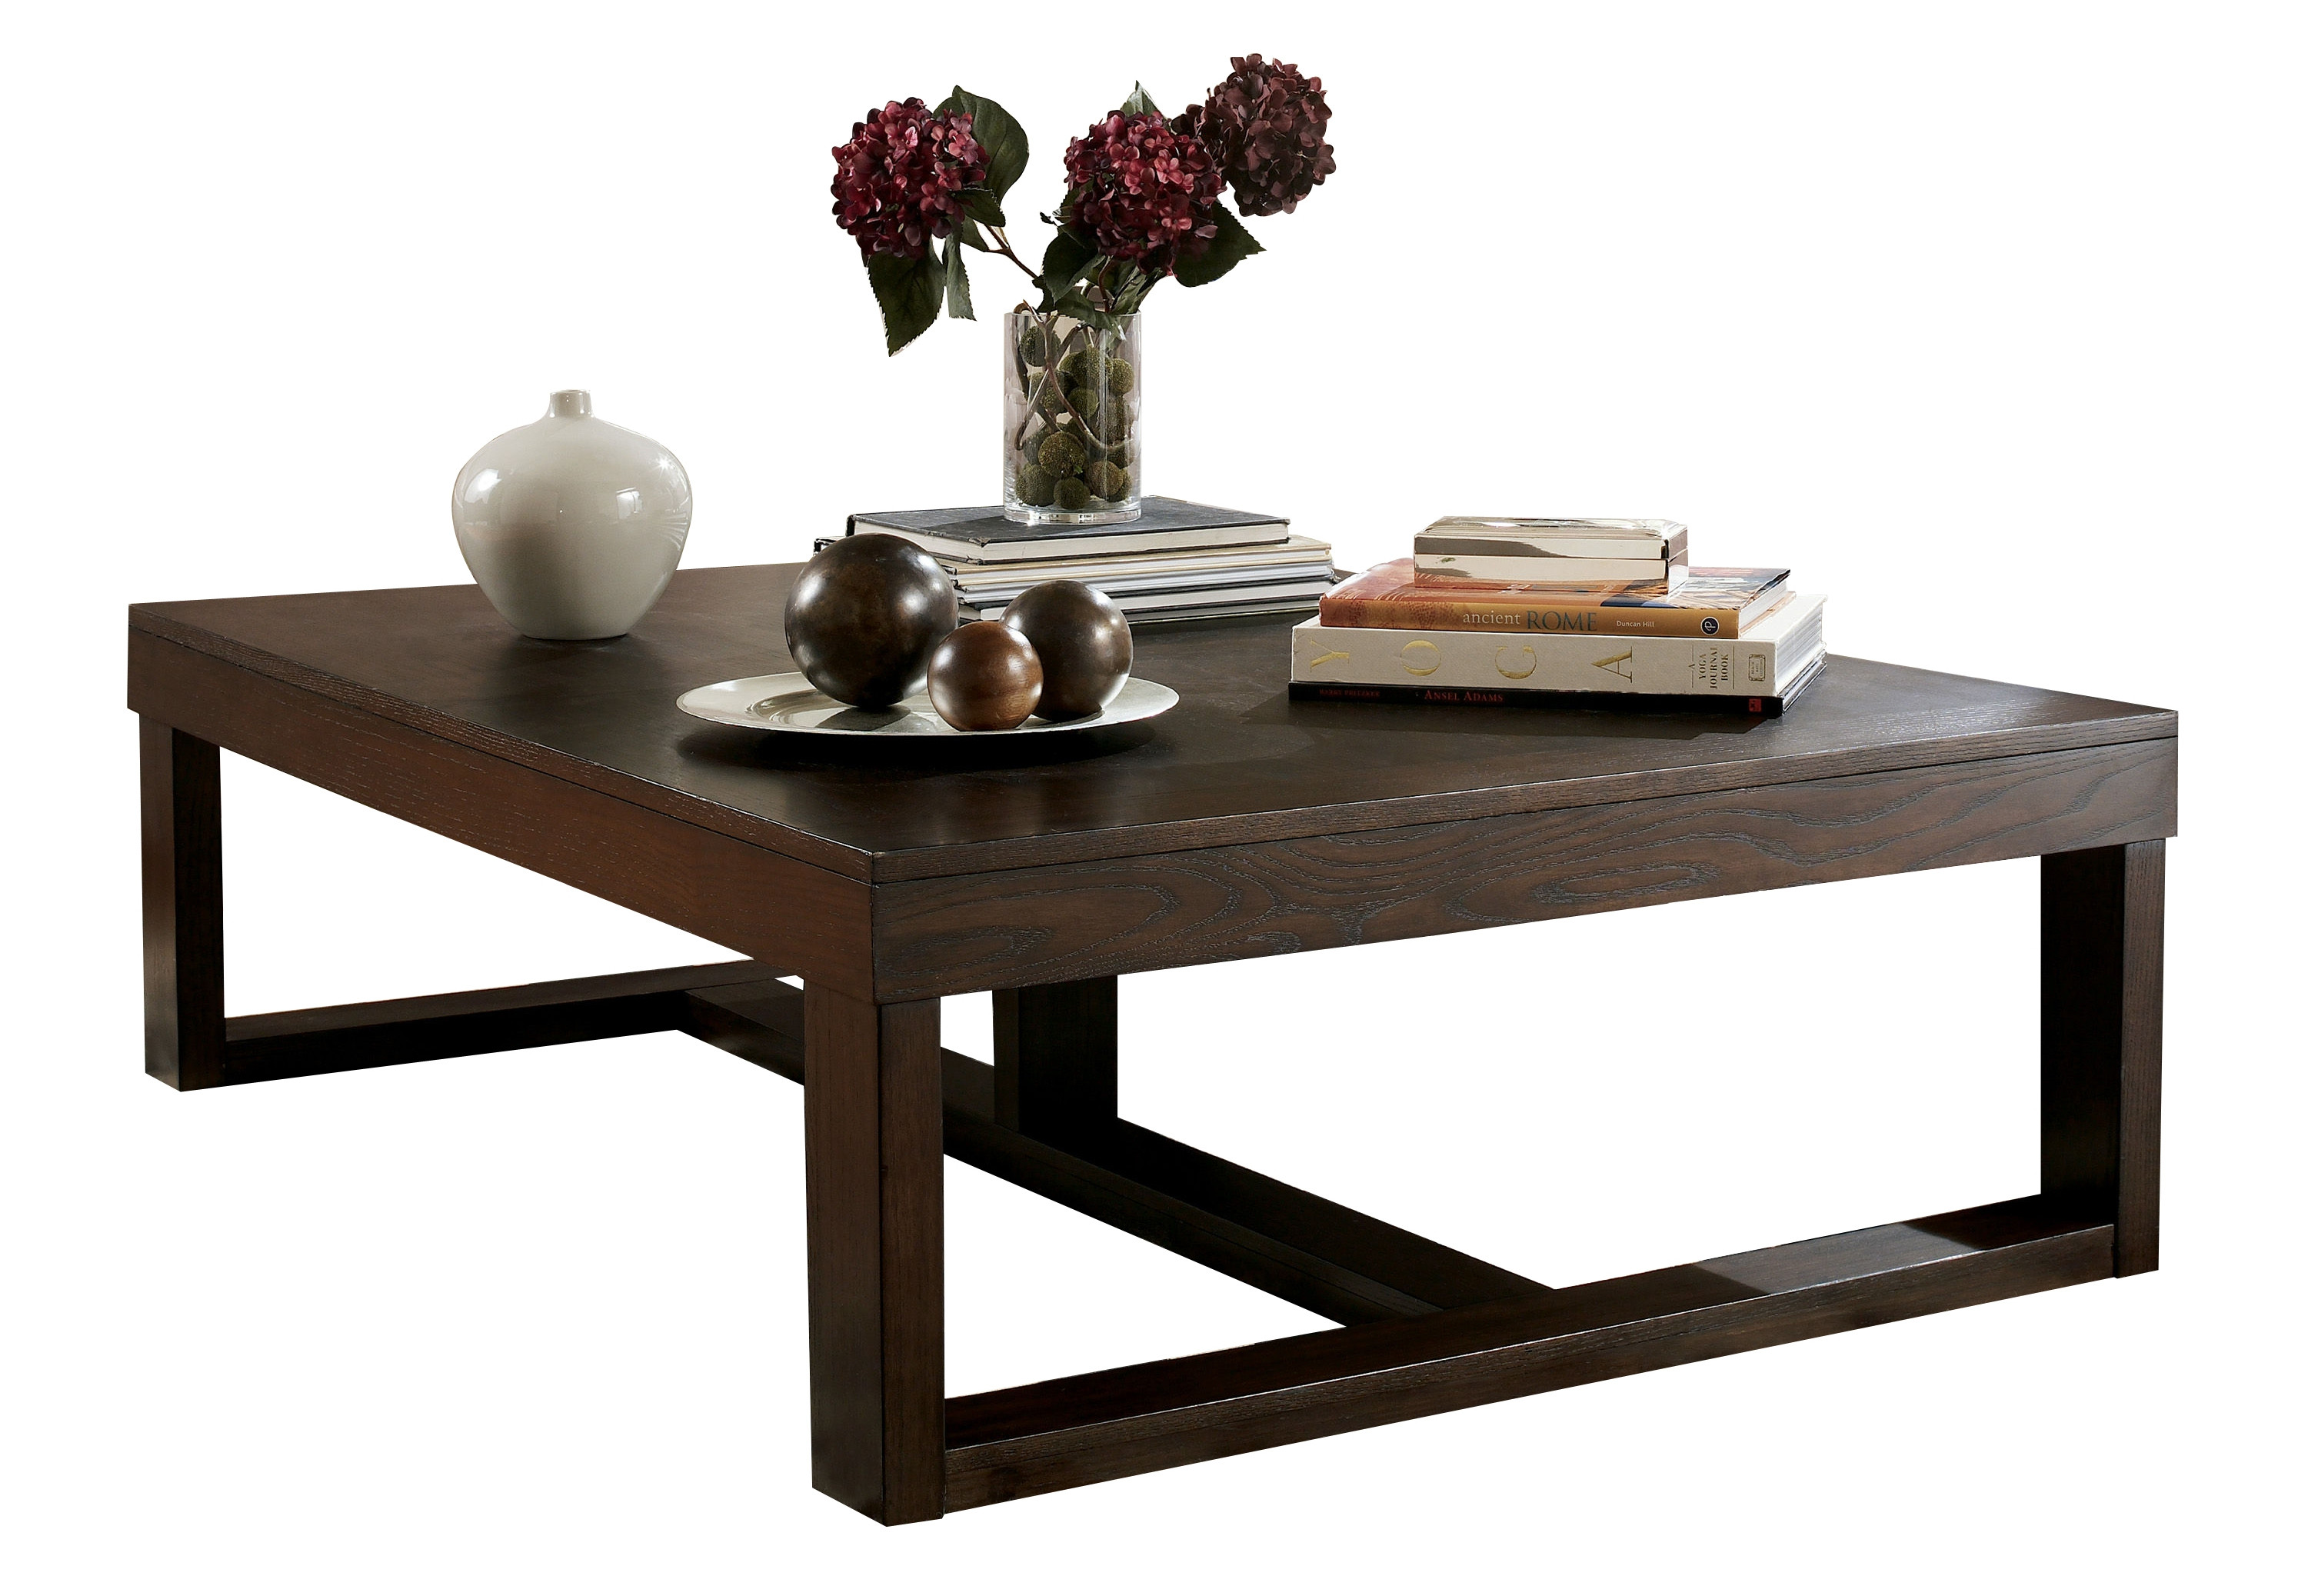 Best ideas about Ashley Furniture Coffee Tables . Save or Pin Ashley Furniture Watson Cocktail Table Now.